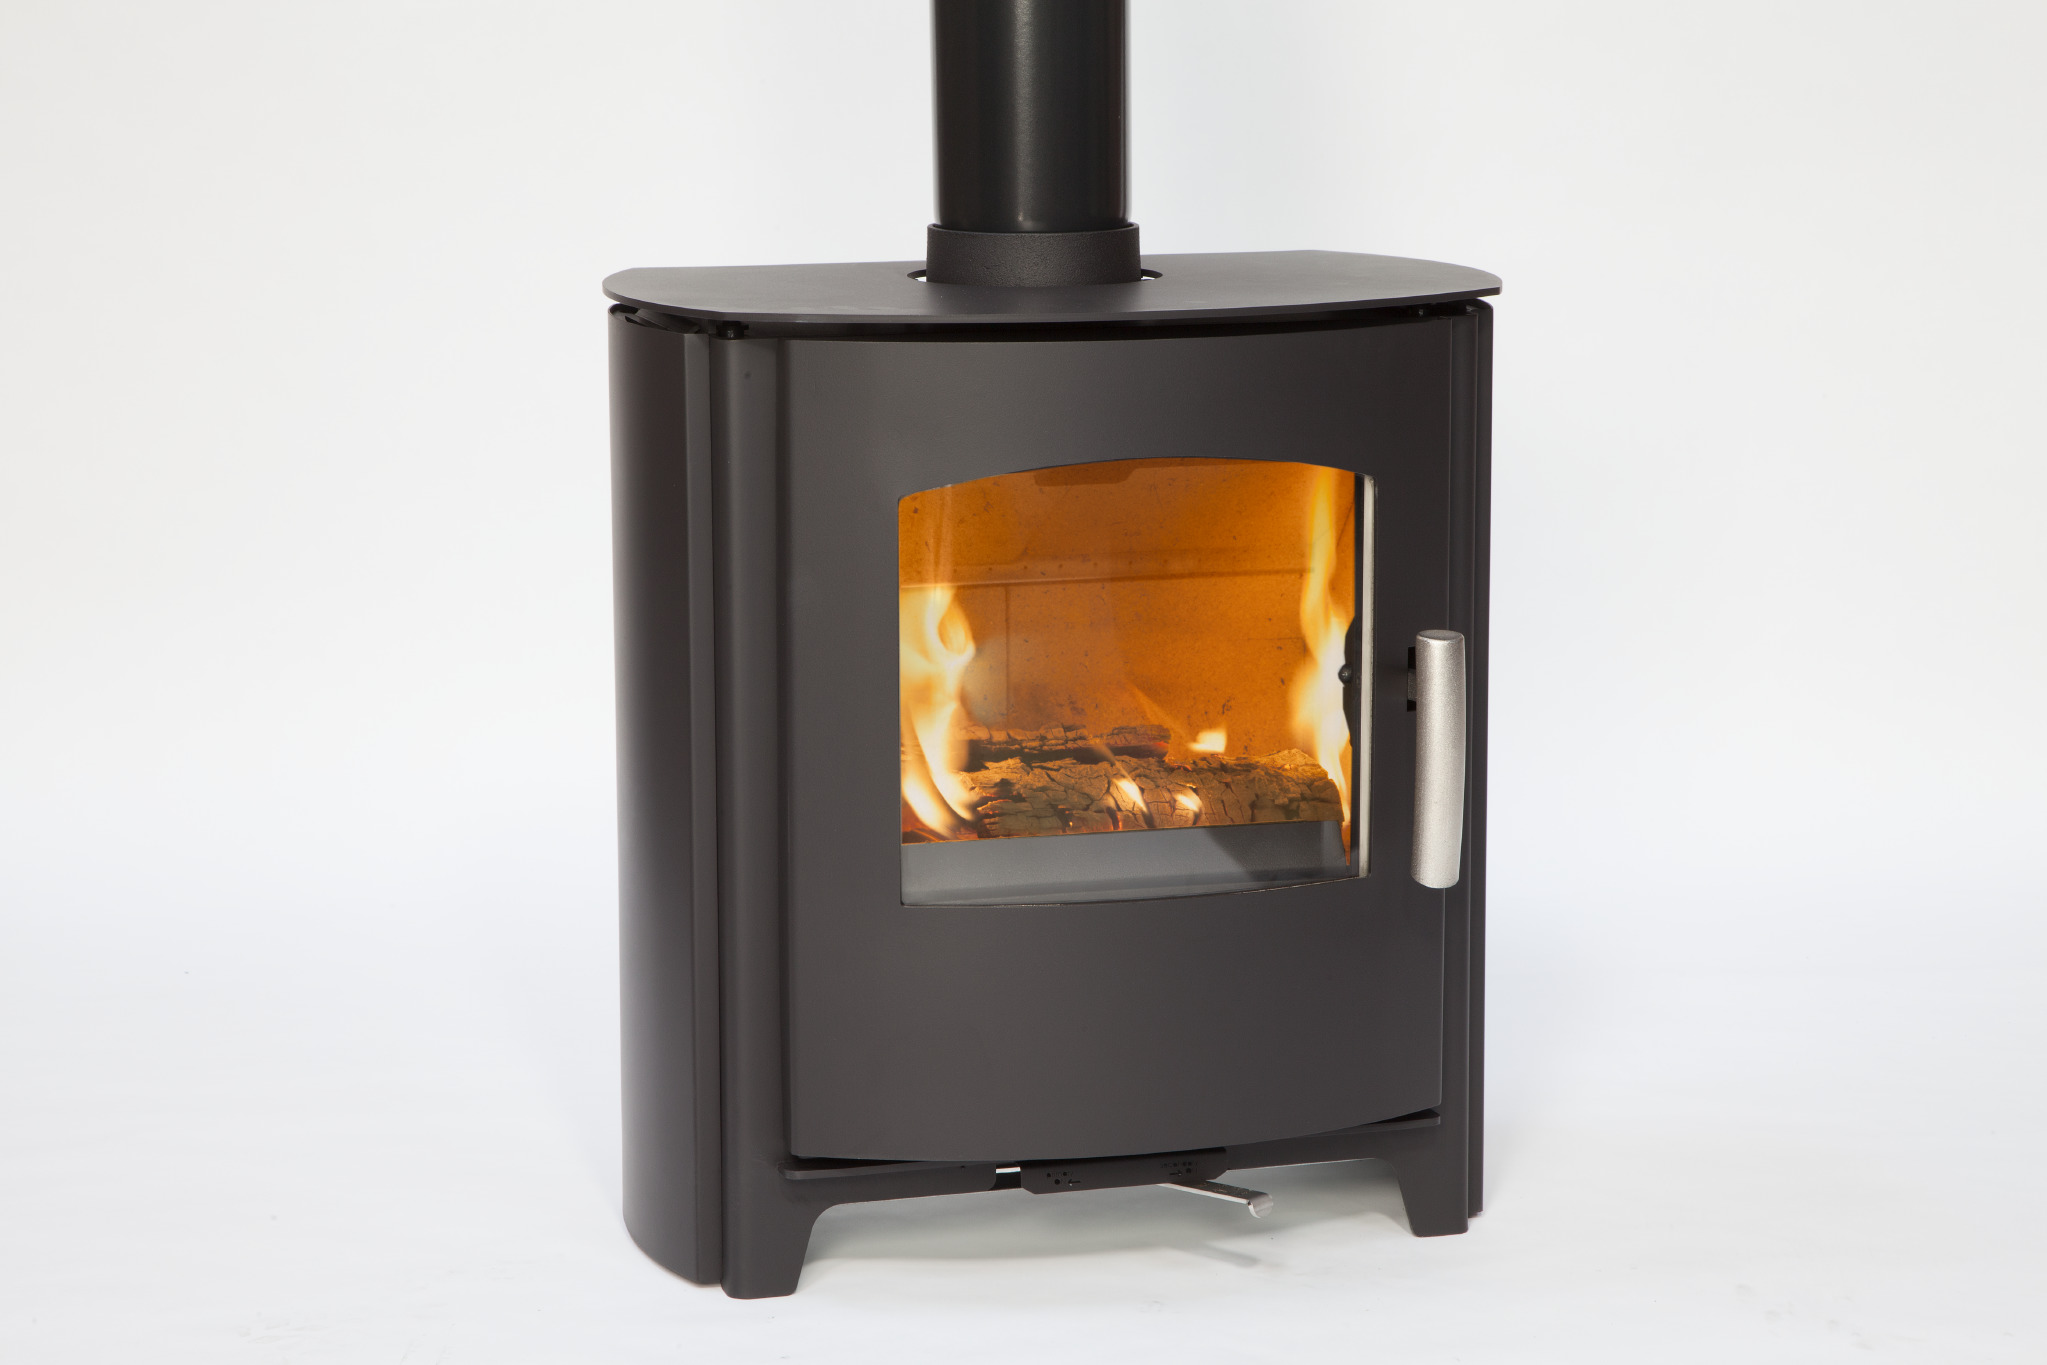 freestanding, granite hearth, slate hearth, woodburning, multifuel, Bangor, Newtownards, Belfast, Holywood, Conlig, Stove yard, Fireplaces, flue pipe, hearths, room heater, wilsons, Portaferry, Kircubbin, Greyabbey, riven slate, wooden beans, fireplace beams, fire chambers, open fires, logs, coal, grates, stove glass, grate bars, ards fireplaces, Jubilee Road, Helensbay, Crawfordsburn, flexi flue, chimney cowls, down draught cowls, gas, natural gas, reflex 75T, log effect fire, Gazco, stovax, medip, arada, varde, Henley, hunter, yeoman